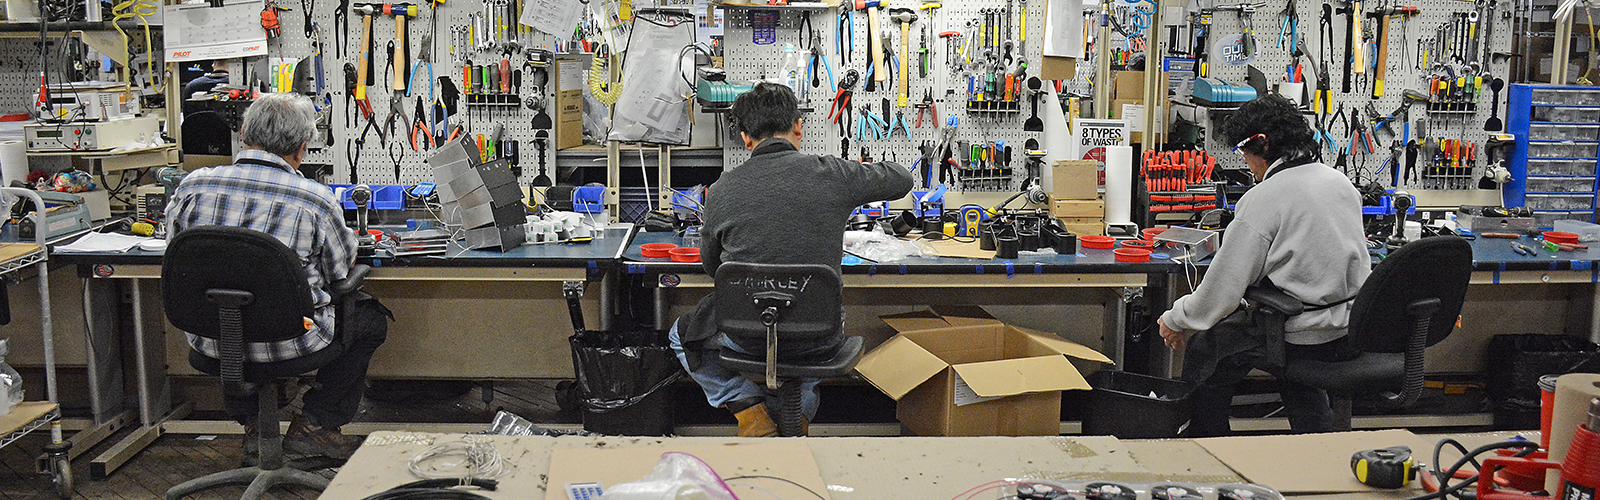 Litelab employees assemble high-end light fixtures which are used in art galleries and high-end retail stores throughout the world. The workforce is primarily made up of refugees who now call Buffalo their home. <span class='image-credits'>Dan Cappellazzo</span>